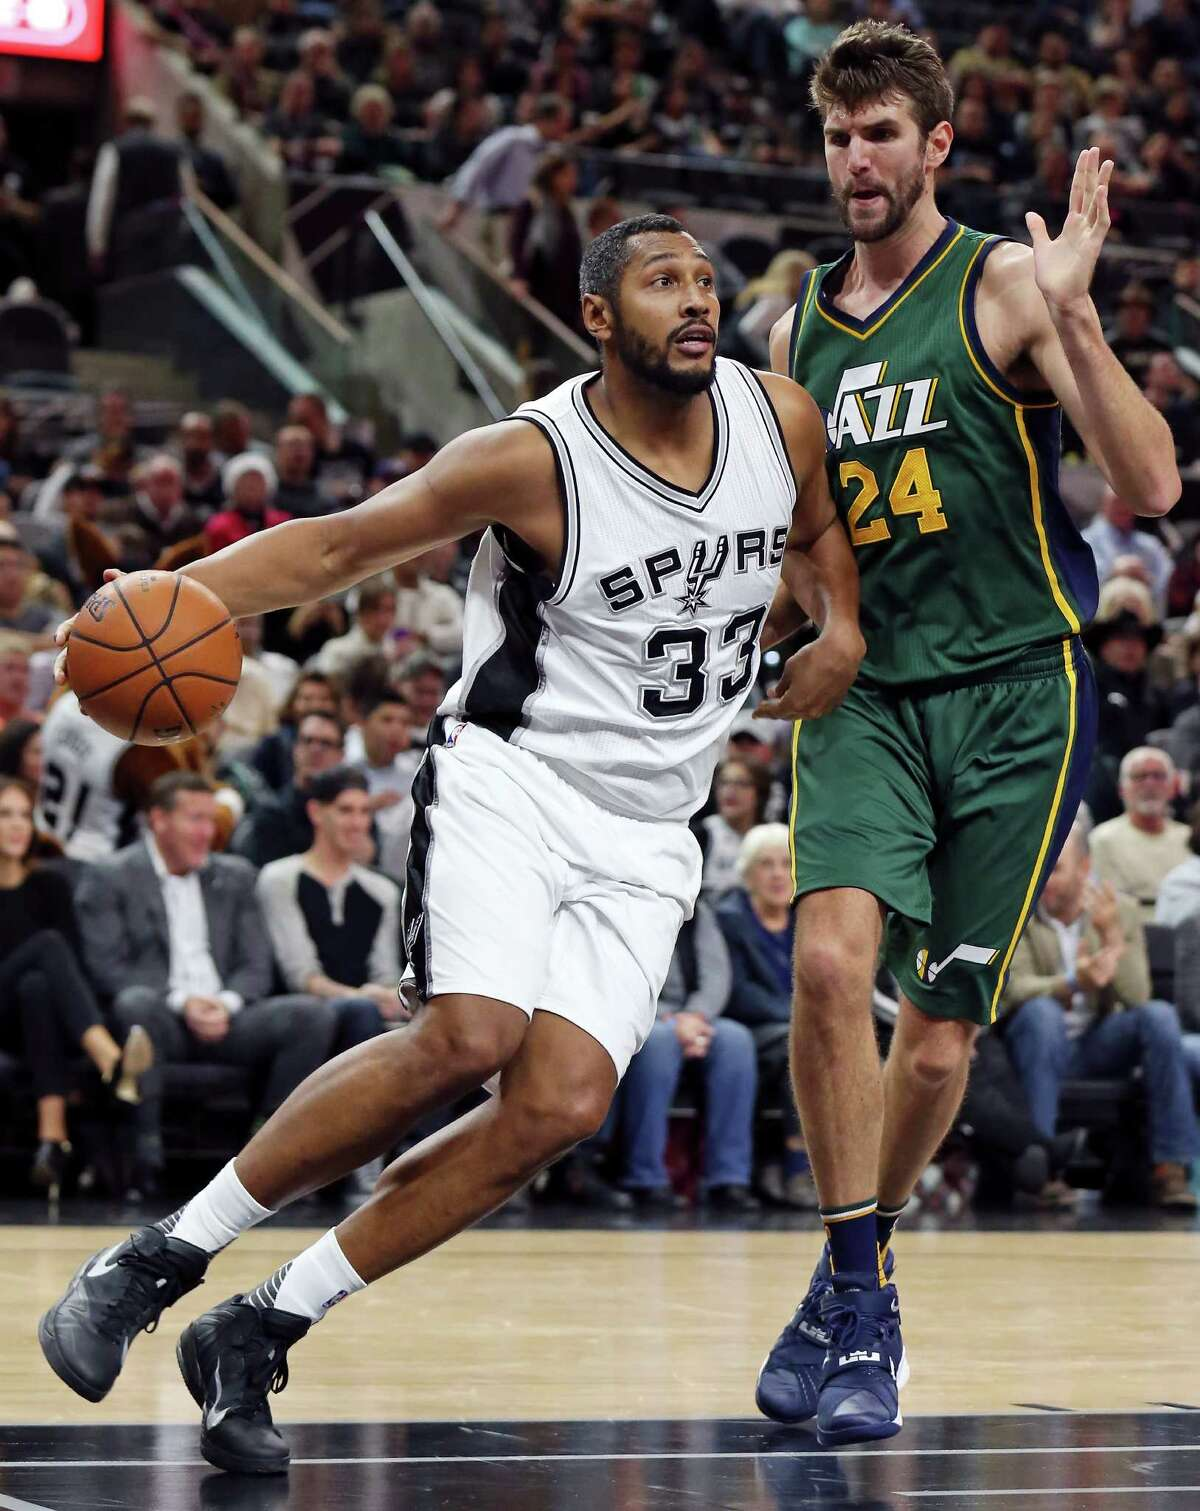 Nov. 1 - Spurs vs. Jazz, 7: 30 p.m. Beloved Boris Diaw was a cap casualty this offseason, traded to the Jazz make way for Pau Gasol. Diaw spent five season with the Spurs, winning a ring in 2014. Expect a raucous applause for Diaw when he gets off the bench.